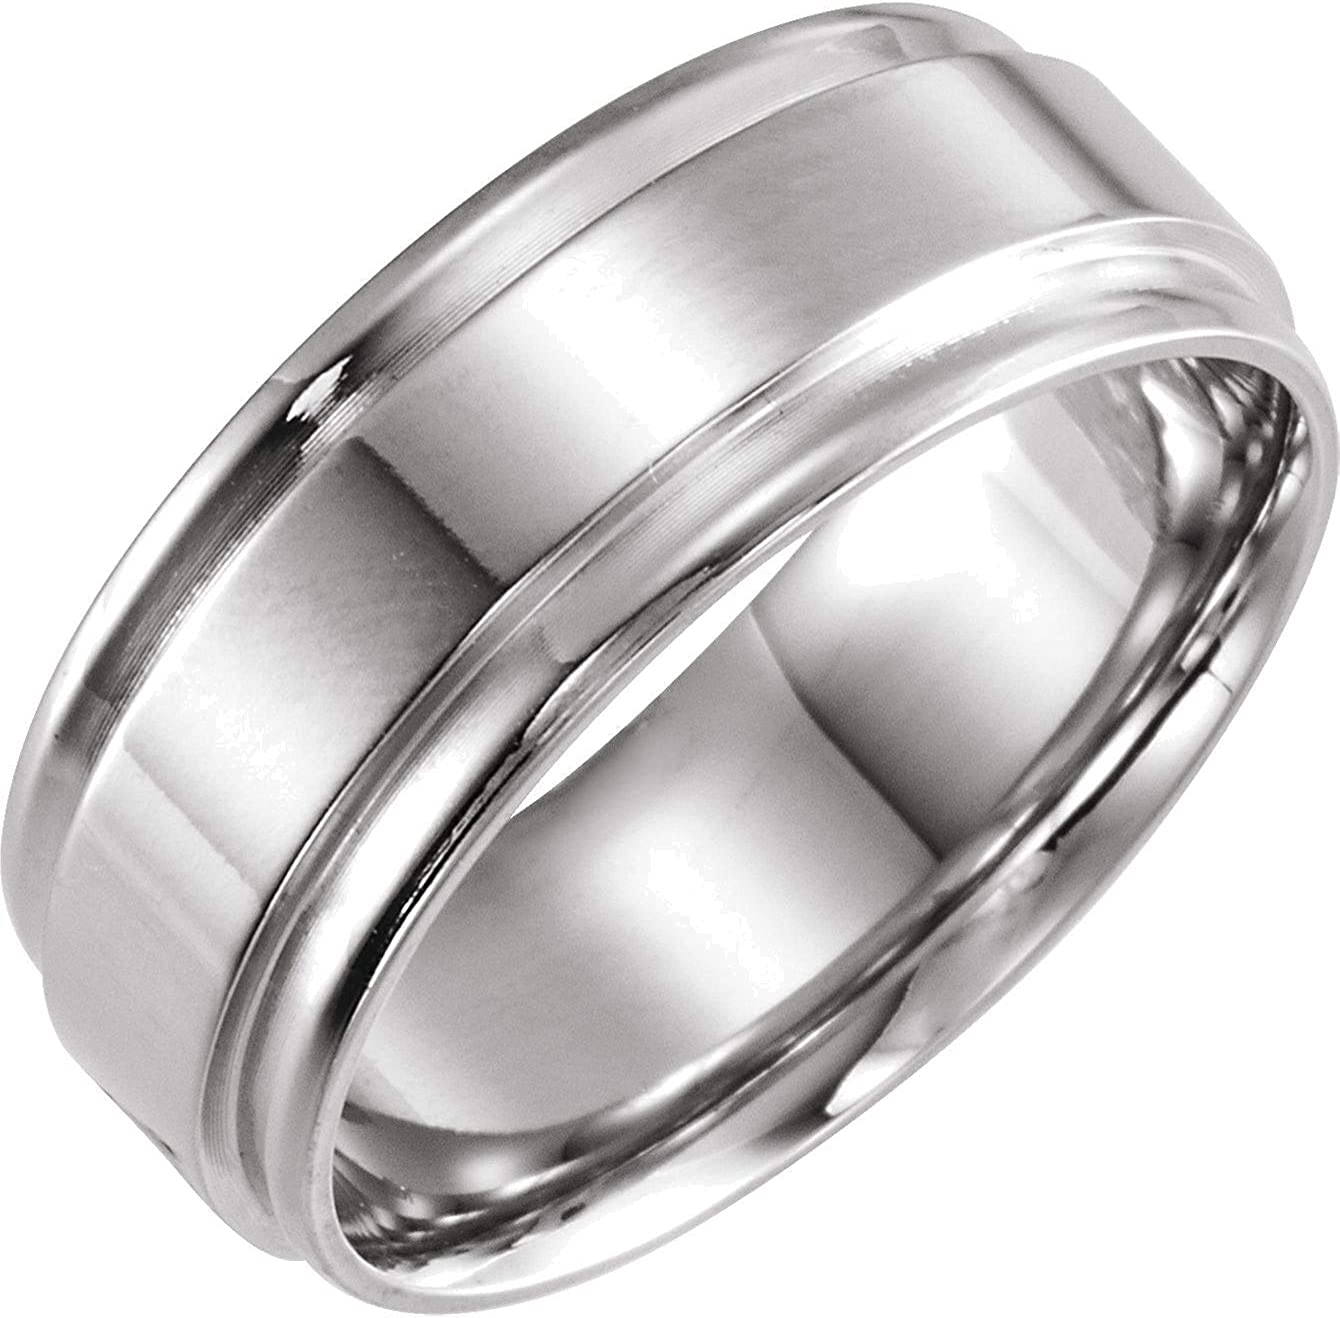 Bonyak Jewelry Solid Sterling Silver 6mm Size Edge in Flat Band Inexpensive Milwaukee Mall